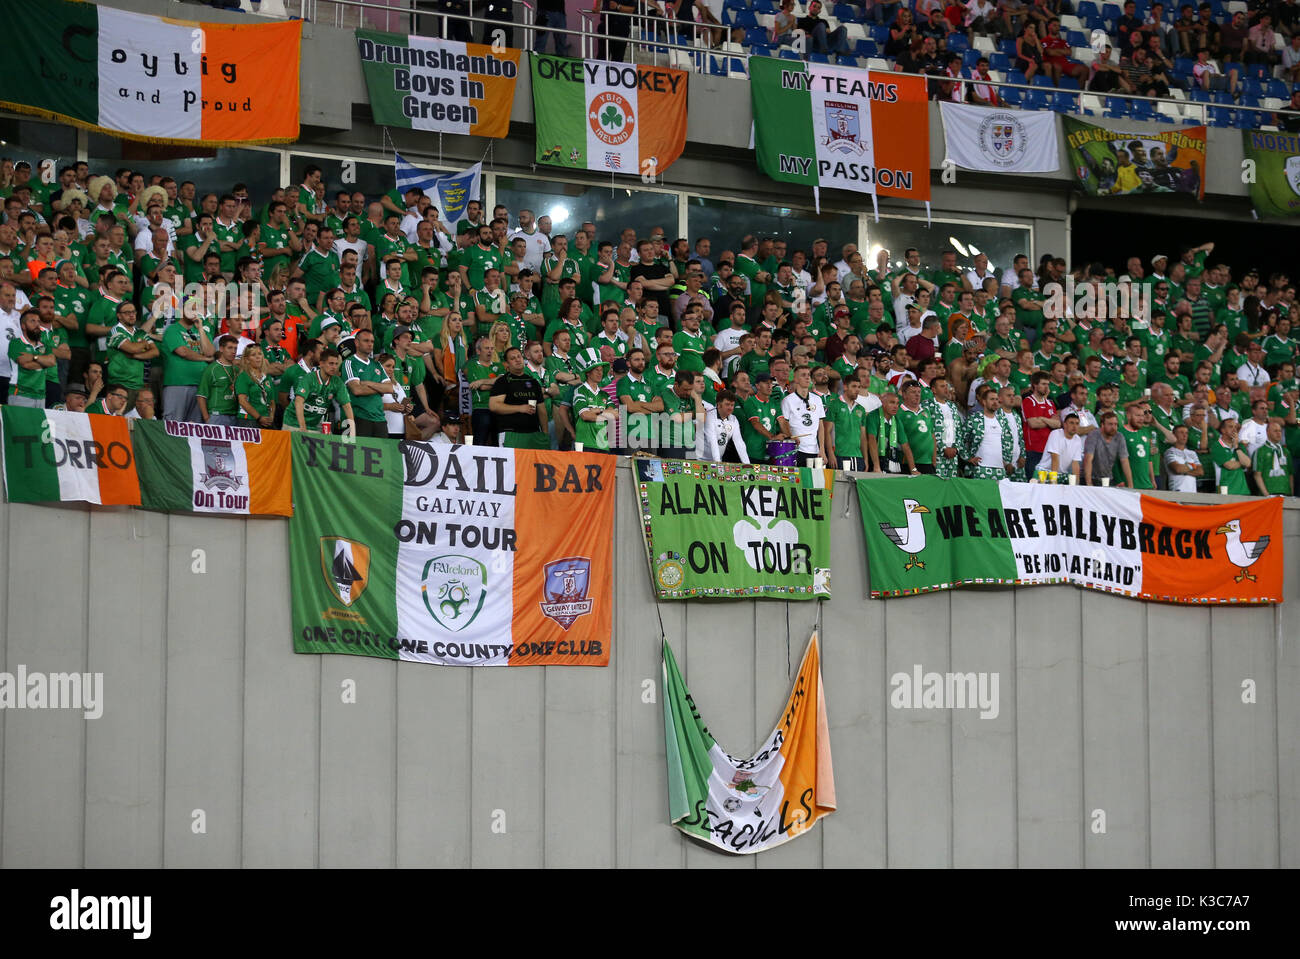 Republic of Ireland fans in the stands show their support during the